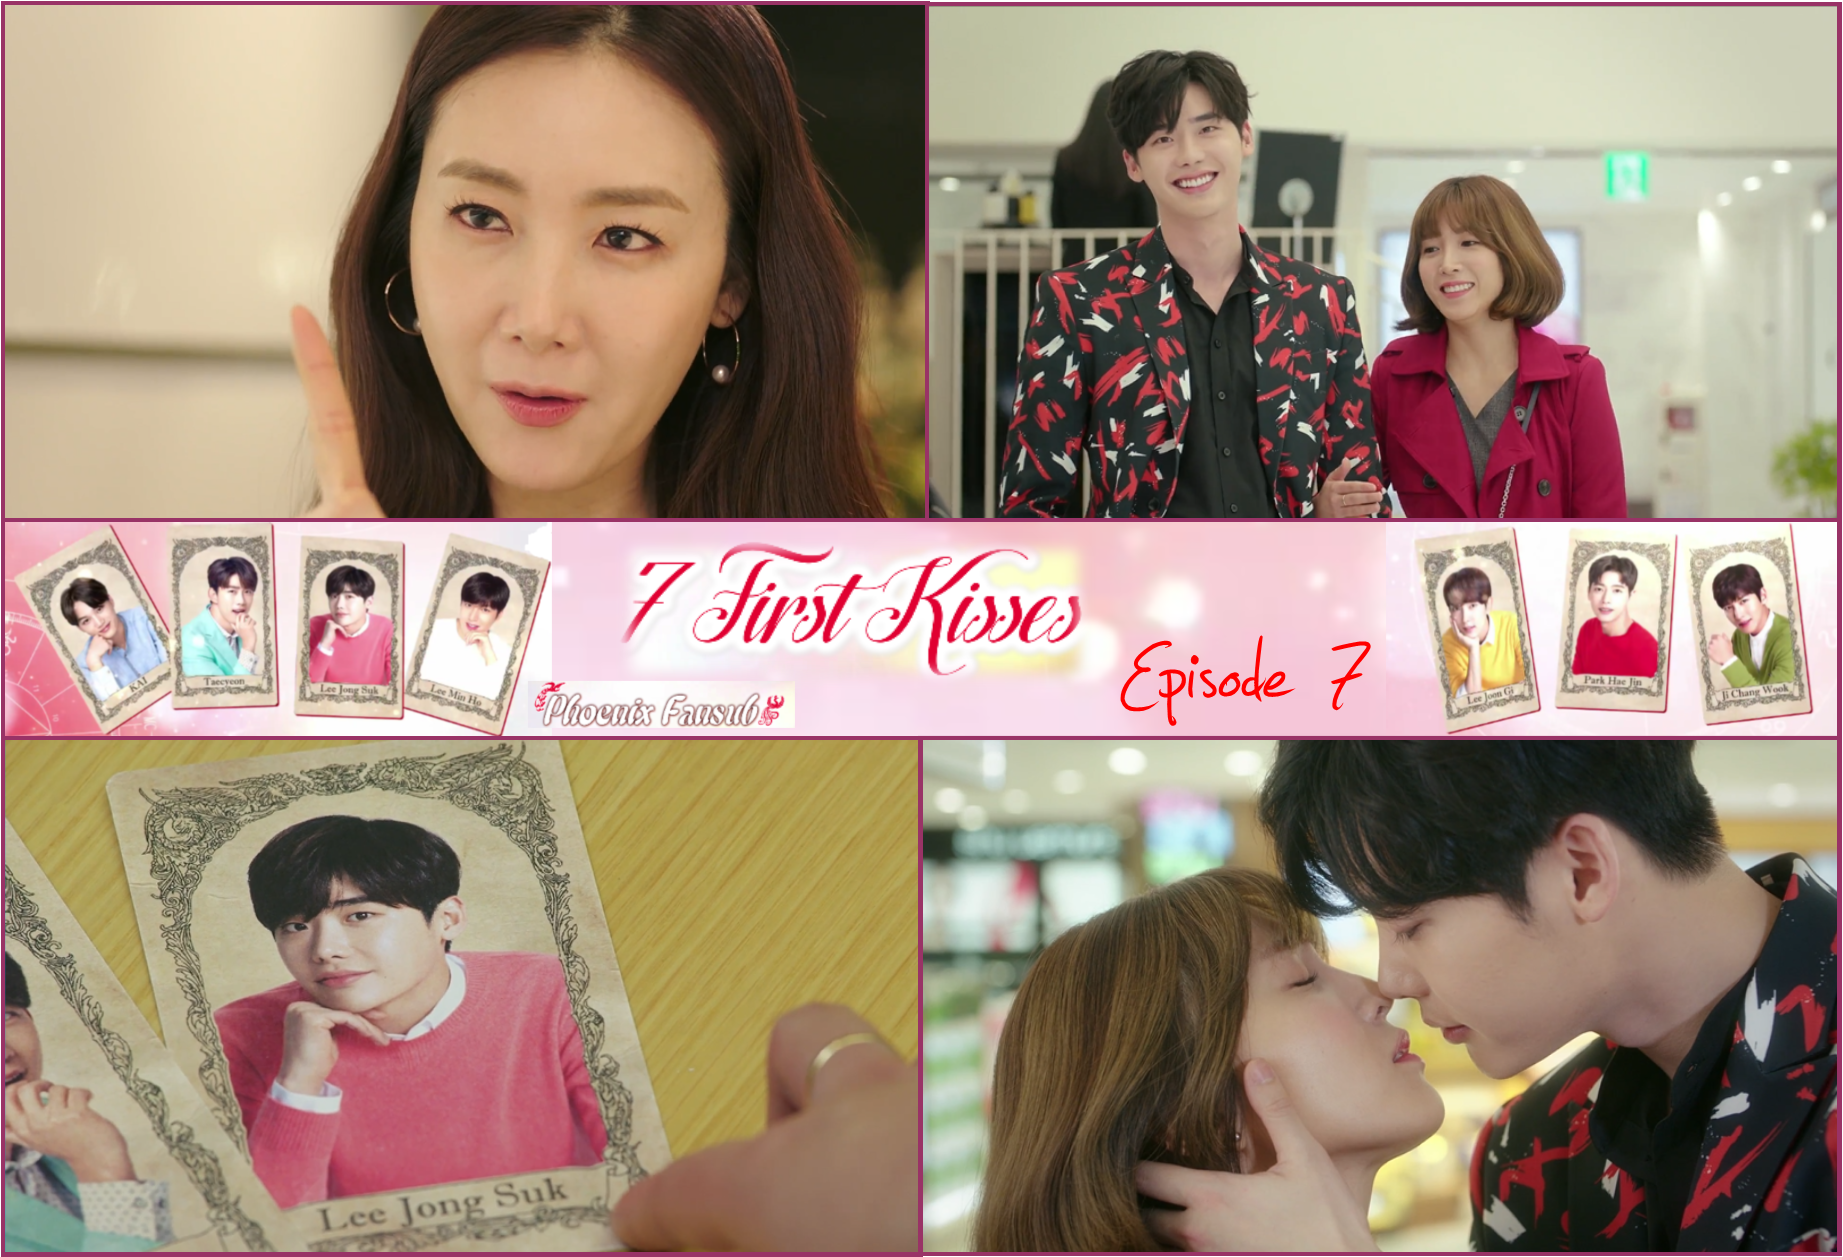 Seven First Kisses / First Kiss For The Seventh Time - Épisode 07 - VOSTFR